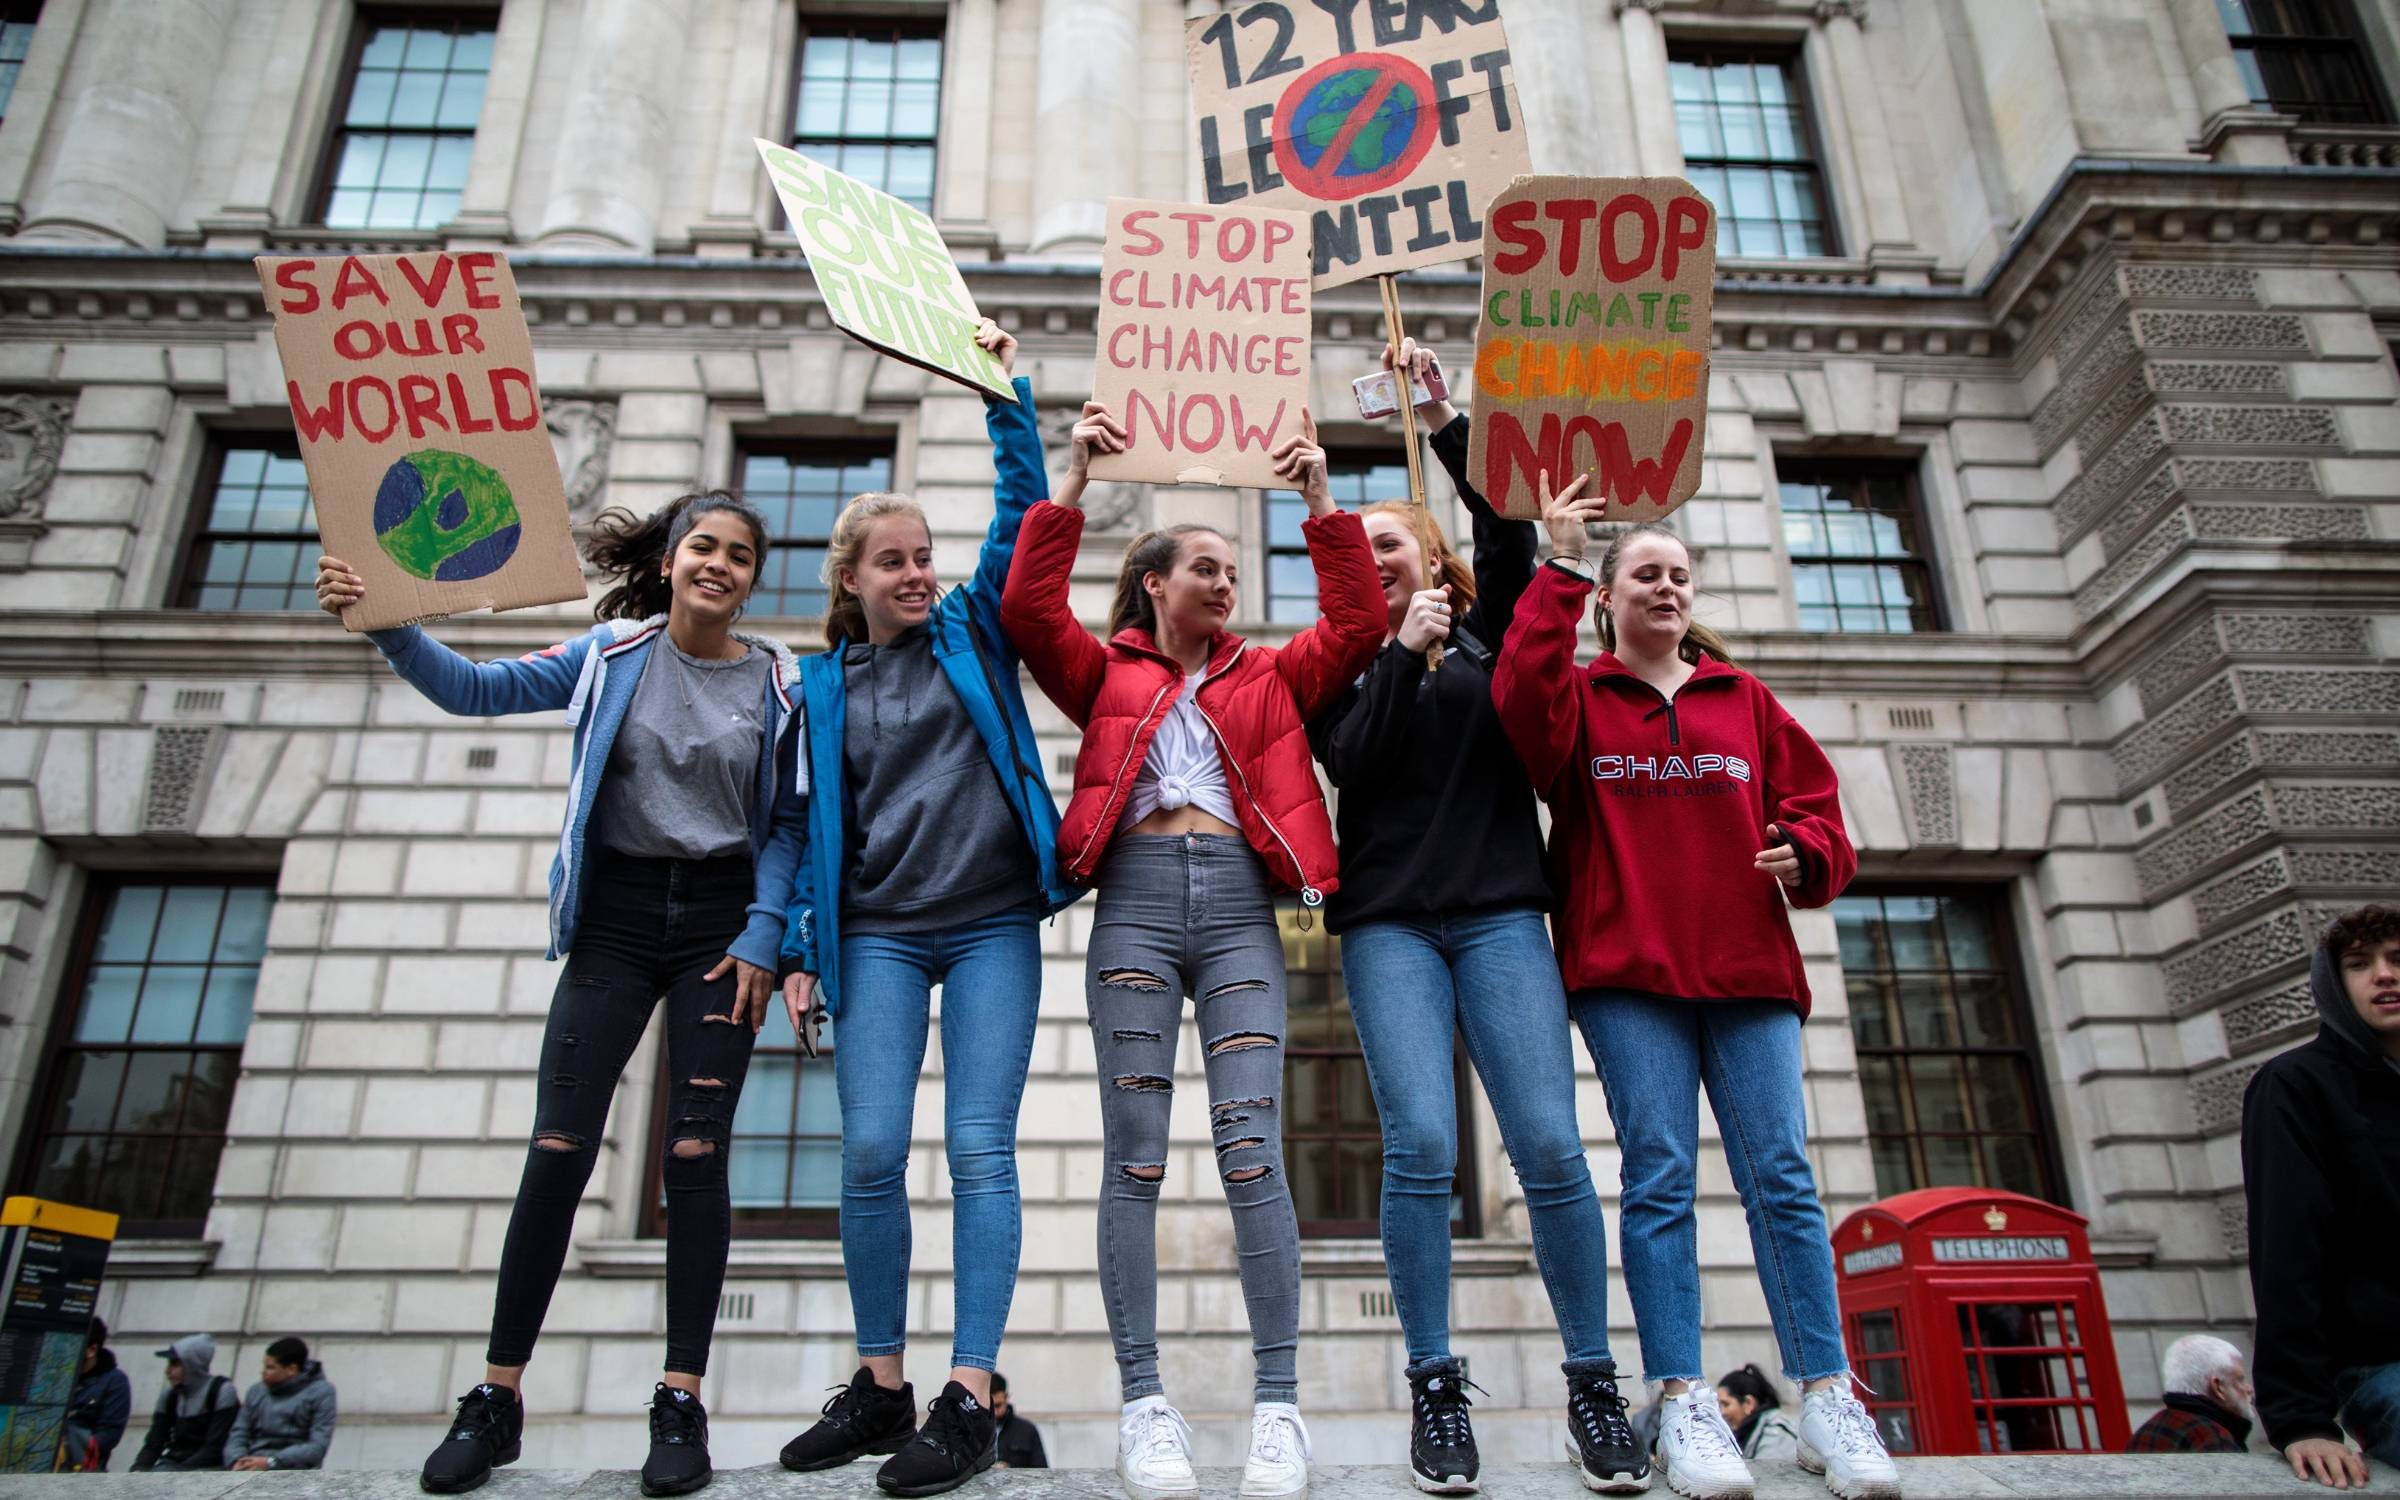 LONDON, ENGLAND - MARCH 15: Students take part in a student climate protest on March 15, 2019 in London, England. Thousands of pupils from schools, colleges and universities across the UK will walk out today in the second major strike against climate change this year. Young people nationwide are calling on the Government to declare a climate emergency and take action. Similar strikes are taking place around the world today including in Japan and Australia, inspired by 16-year-old Greta Thunberg who criticised world leaders at a United Nations climate conference. (Photo by Jack Taylor/Getty Images)